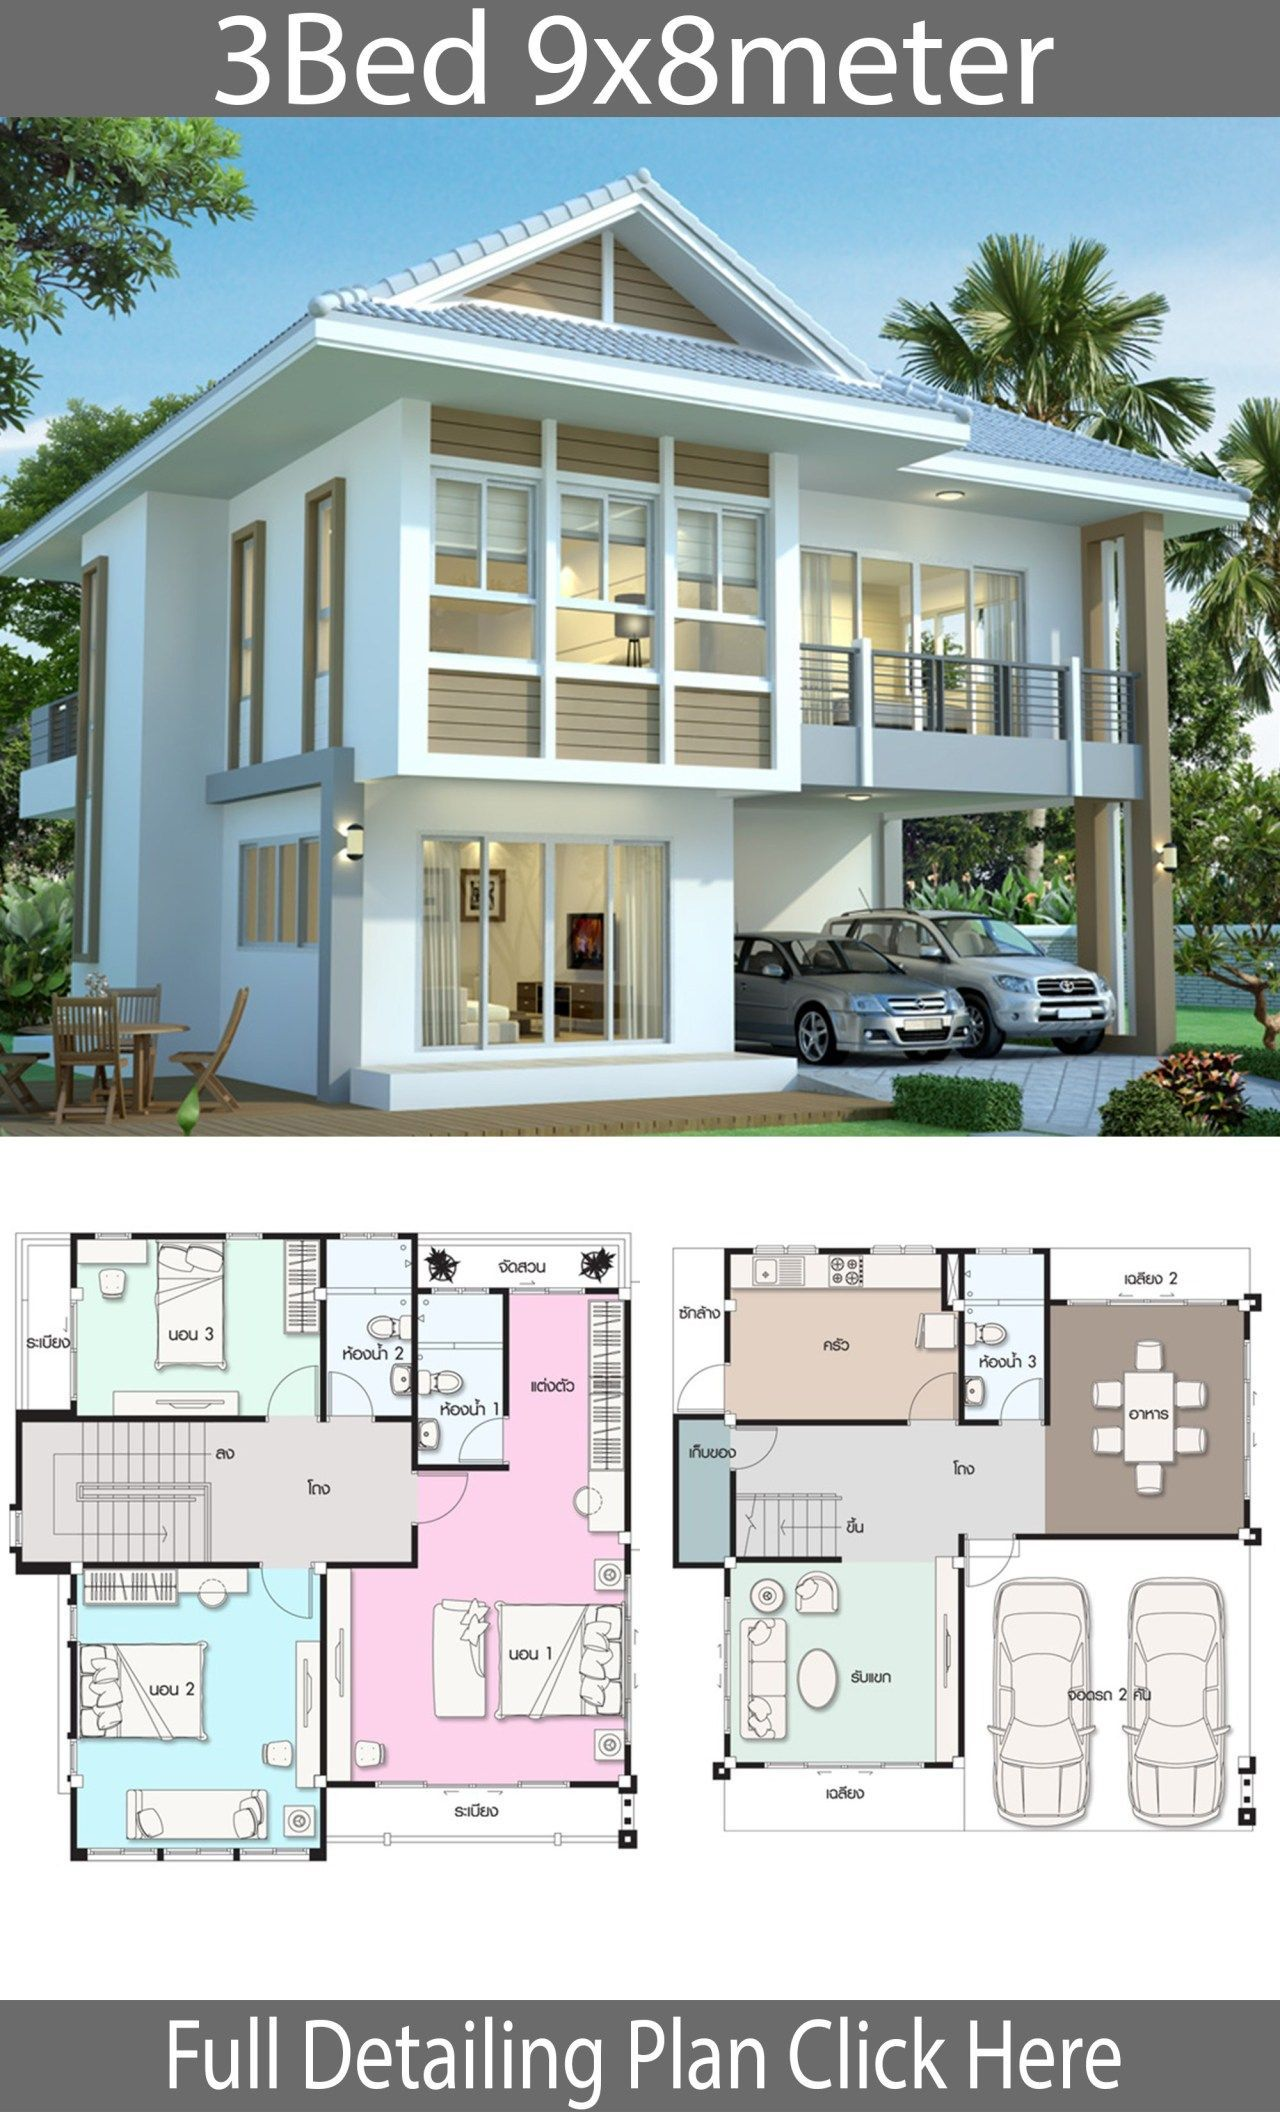 House Design Plan 9x8 With 3 Bedrooms Home Ideas In 2020 2 Storey House Design Sims House Plans Modern Style House Plans